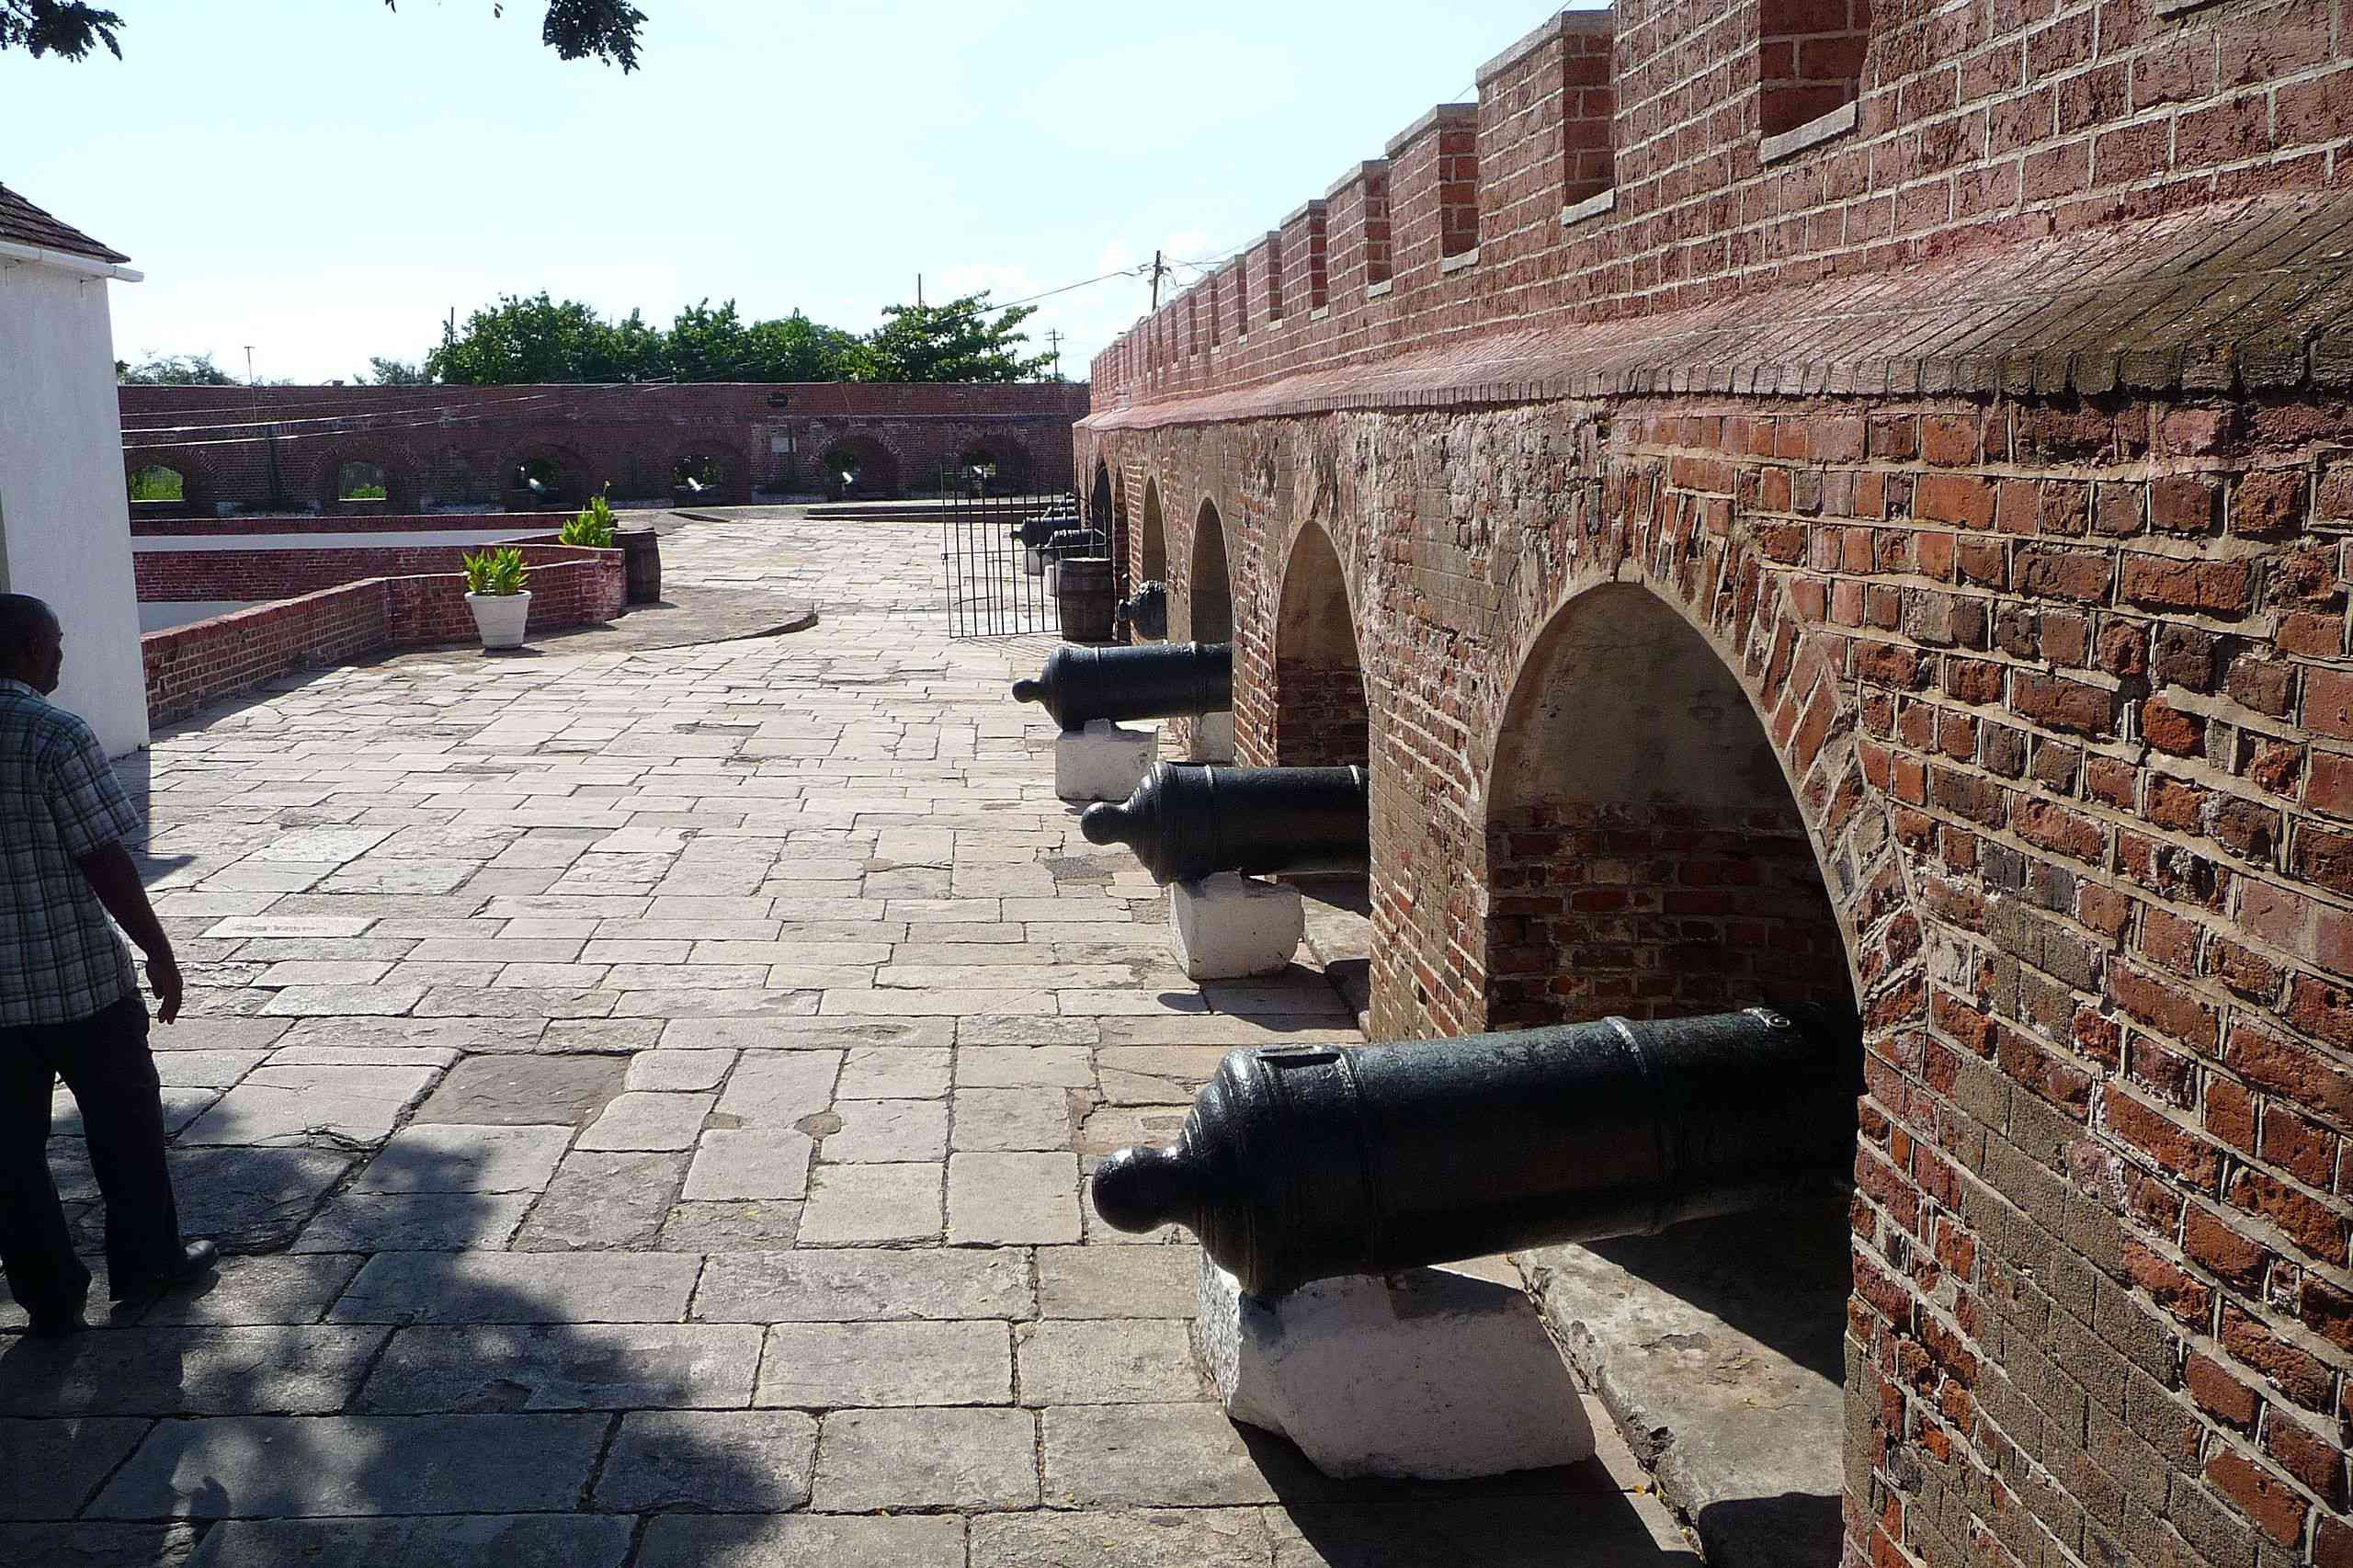 Cannons flanking the perimeter of a historic fortress